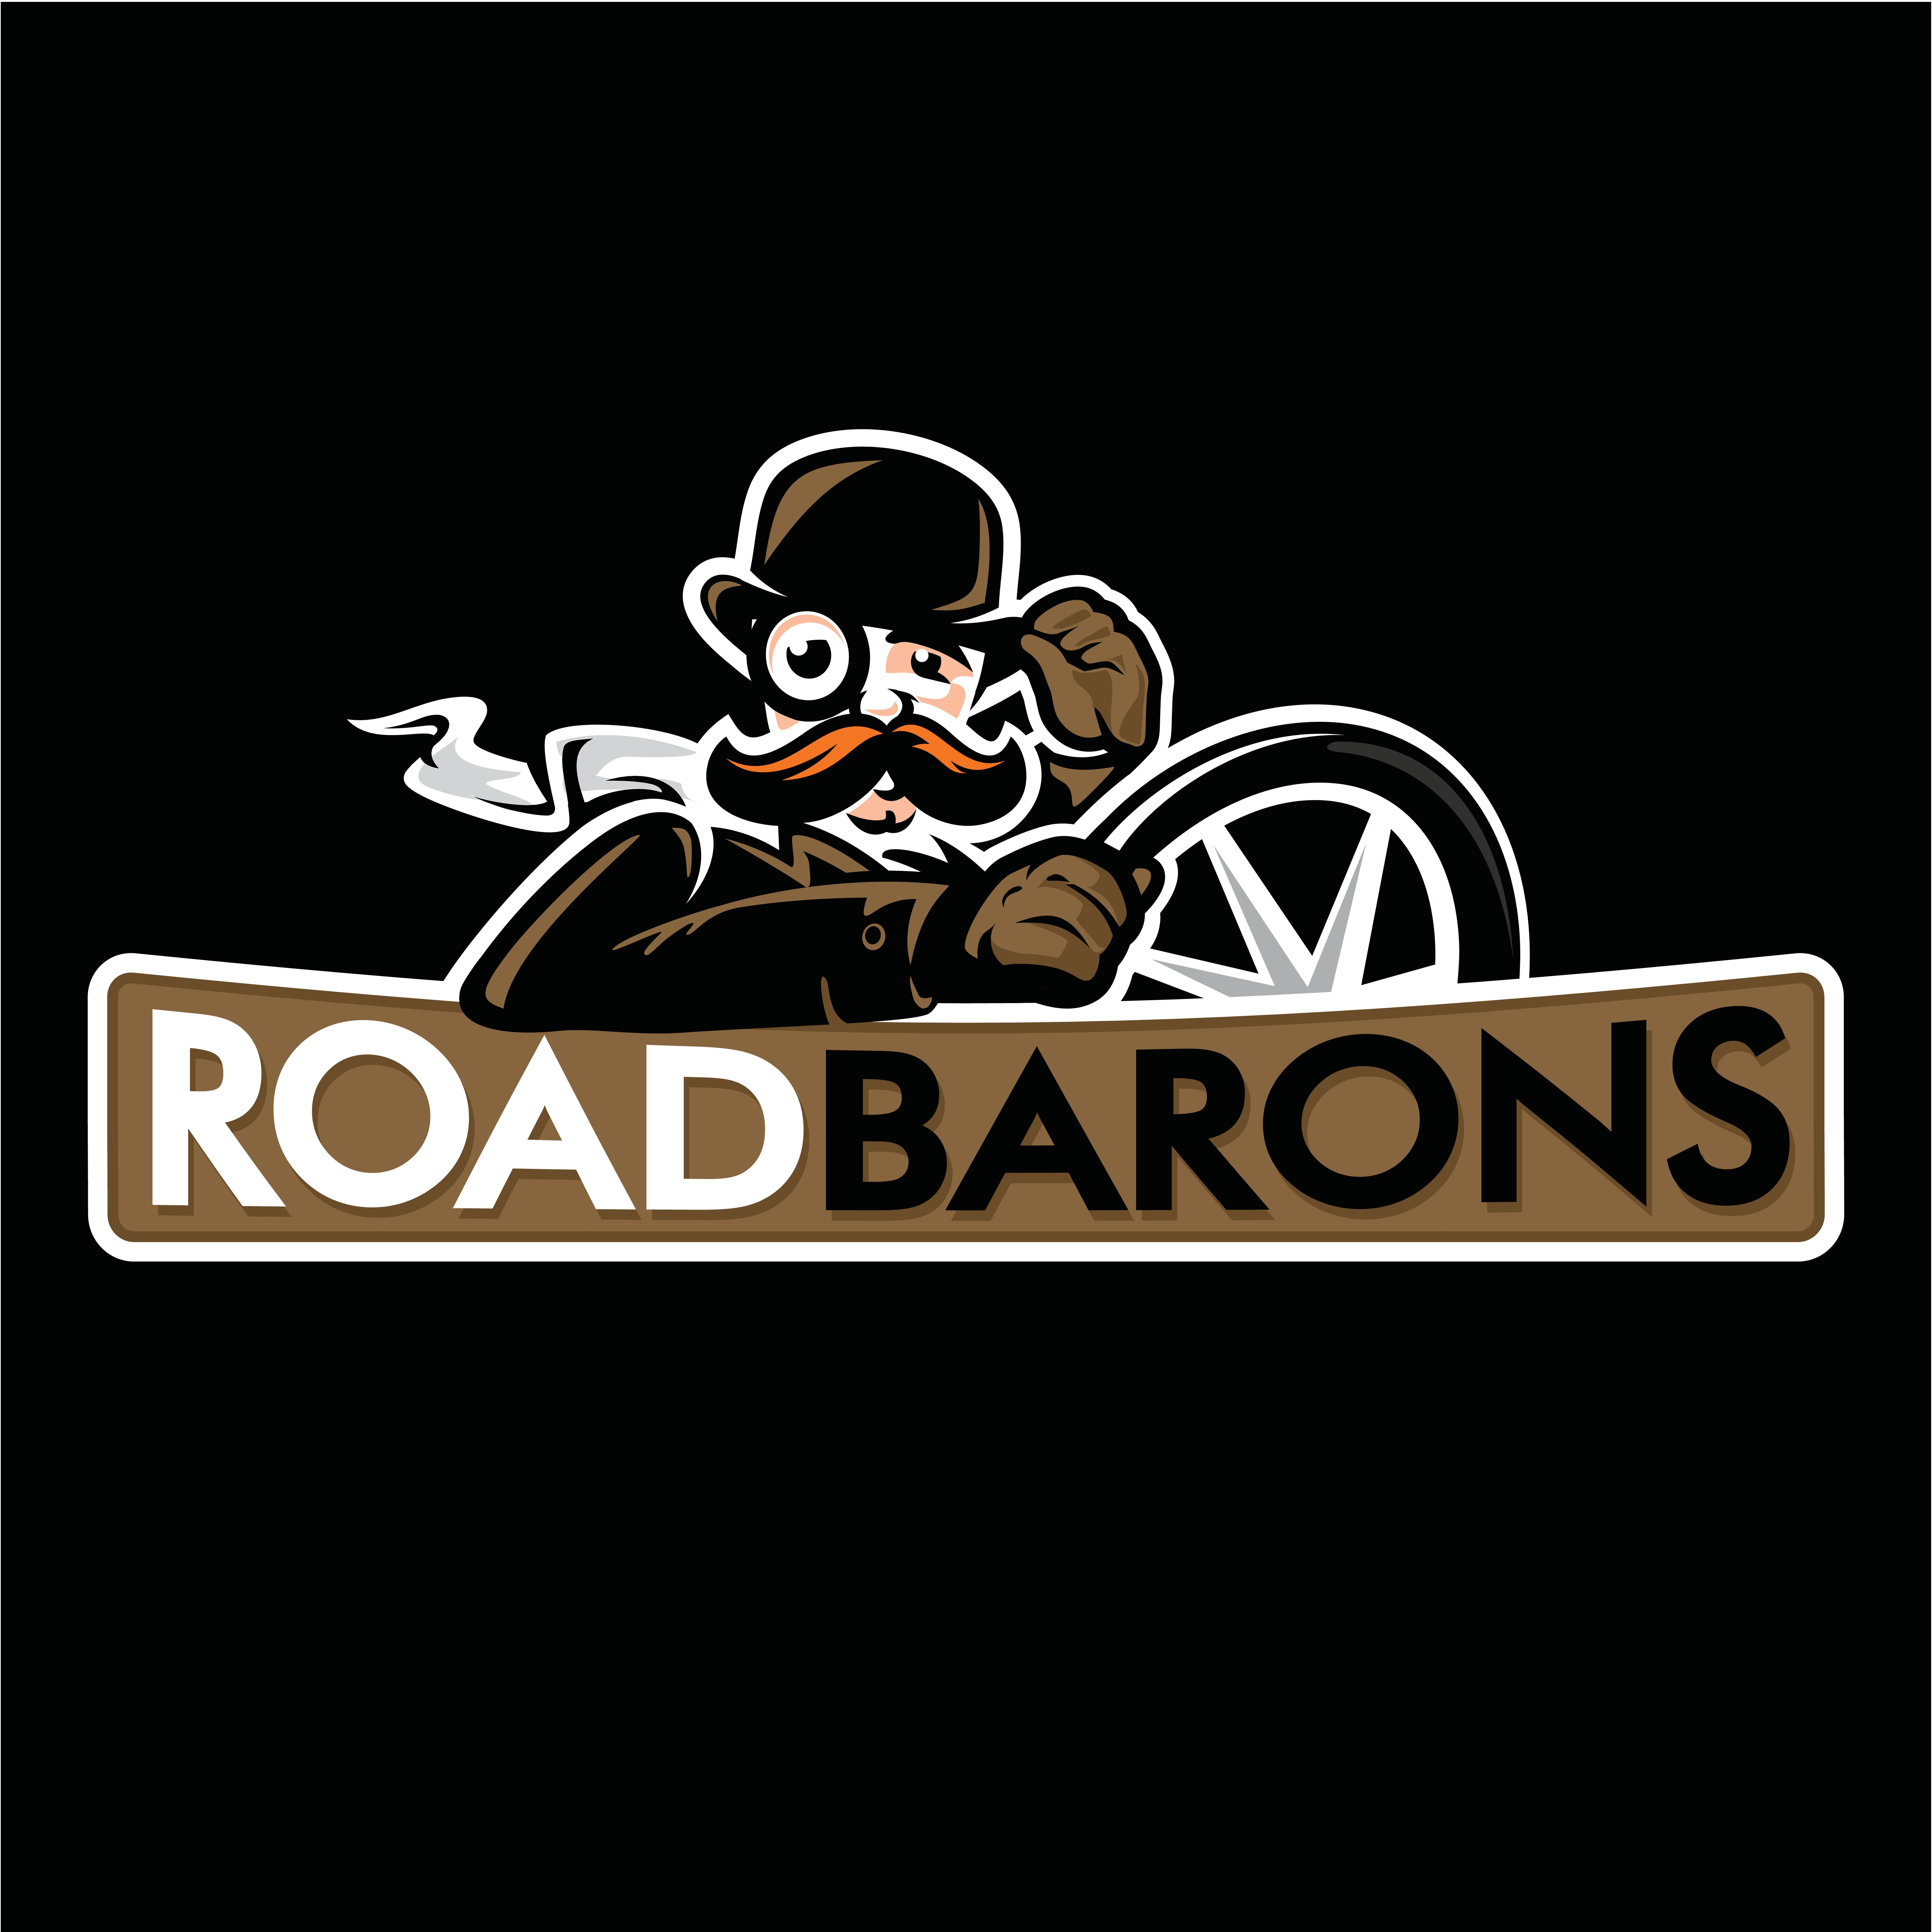 Use your creative license to help us launch our new RoadBarons line of car organizers.